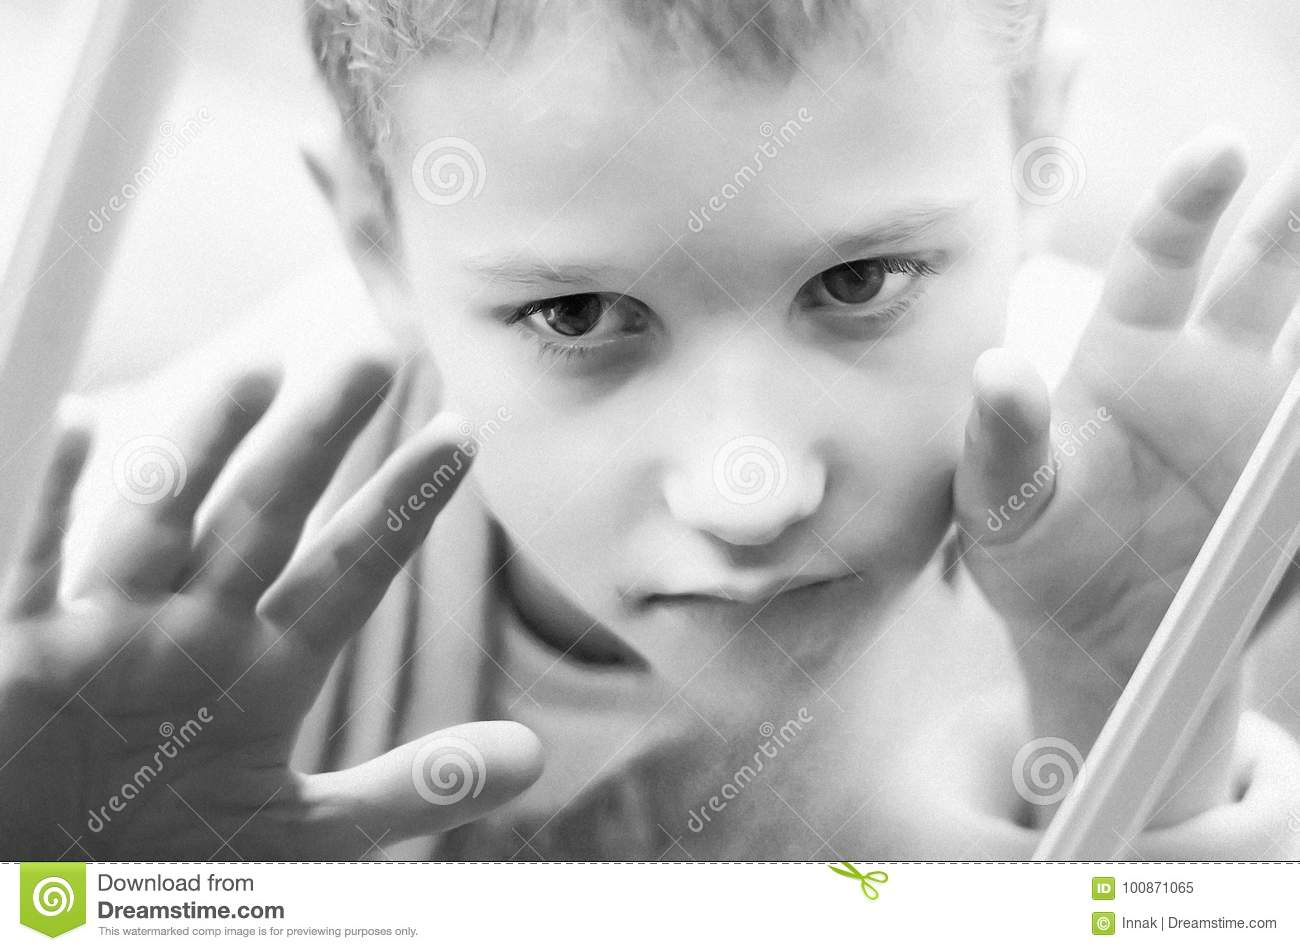 Little sad boy looks out the window. Black and white photo of a close-up child. Hungry child with big clear eyes eating bread